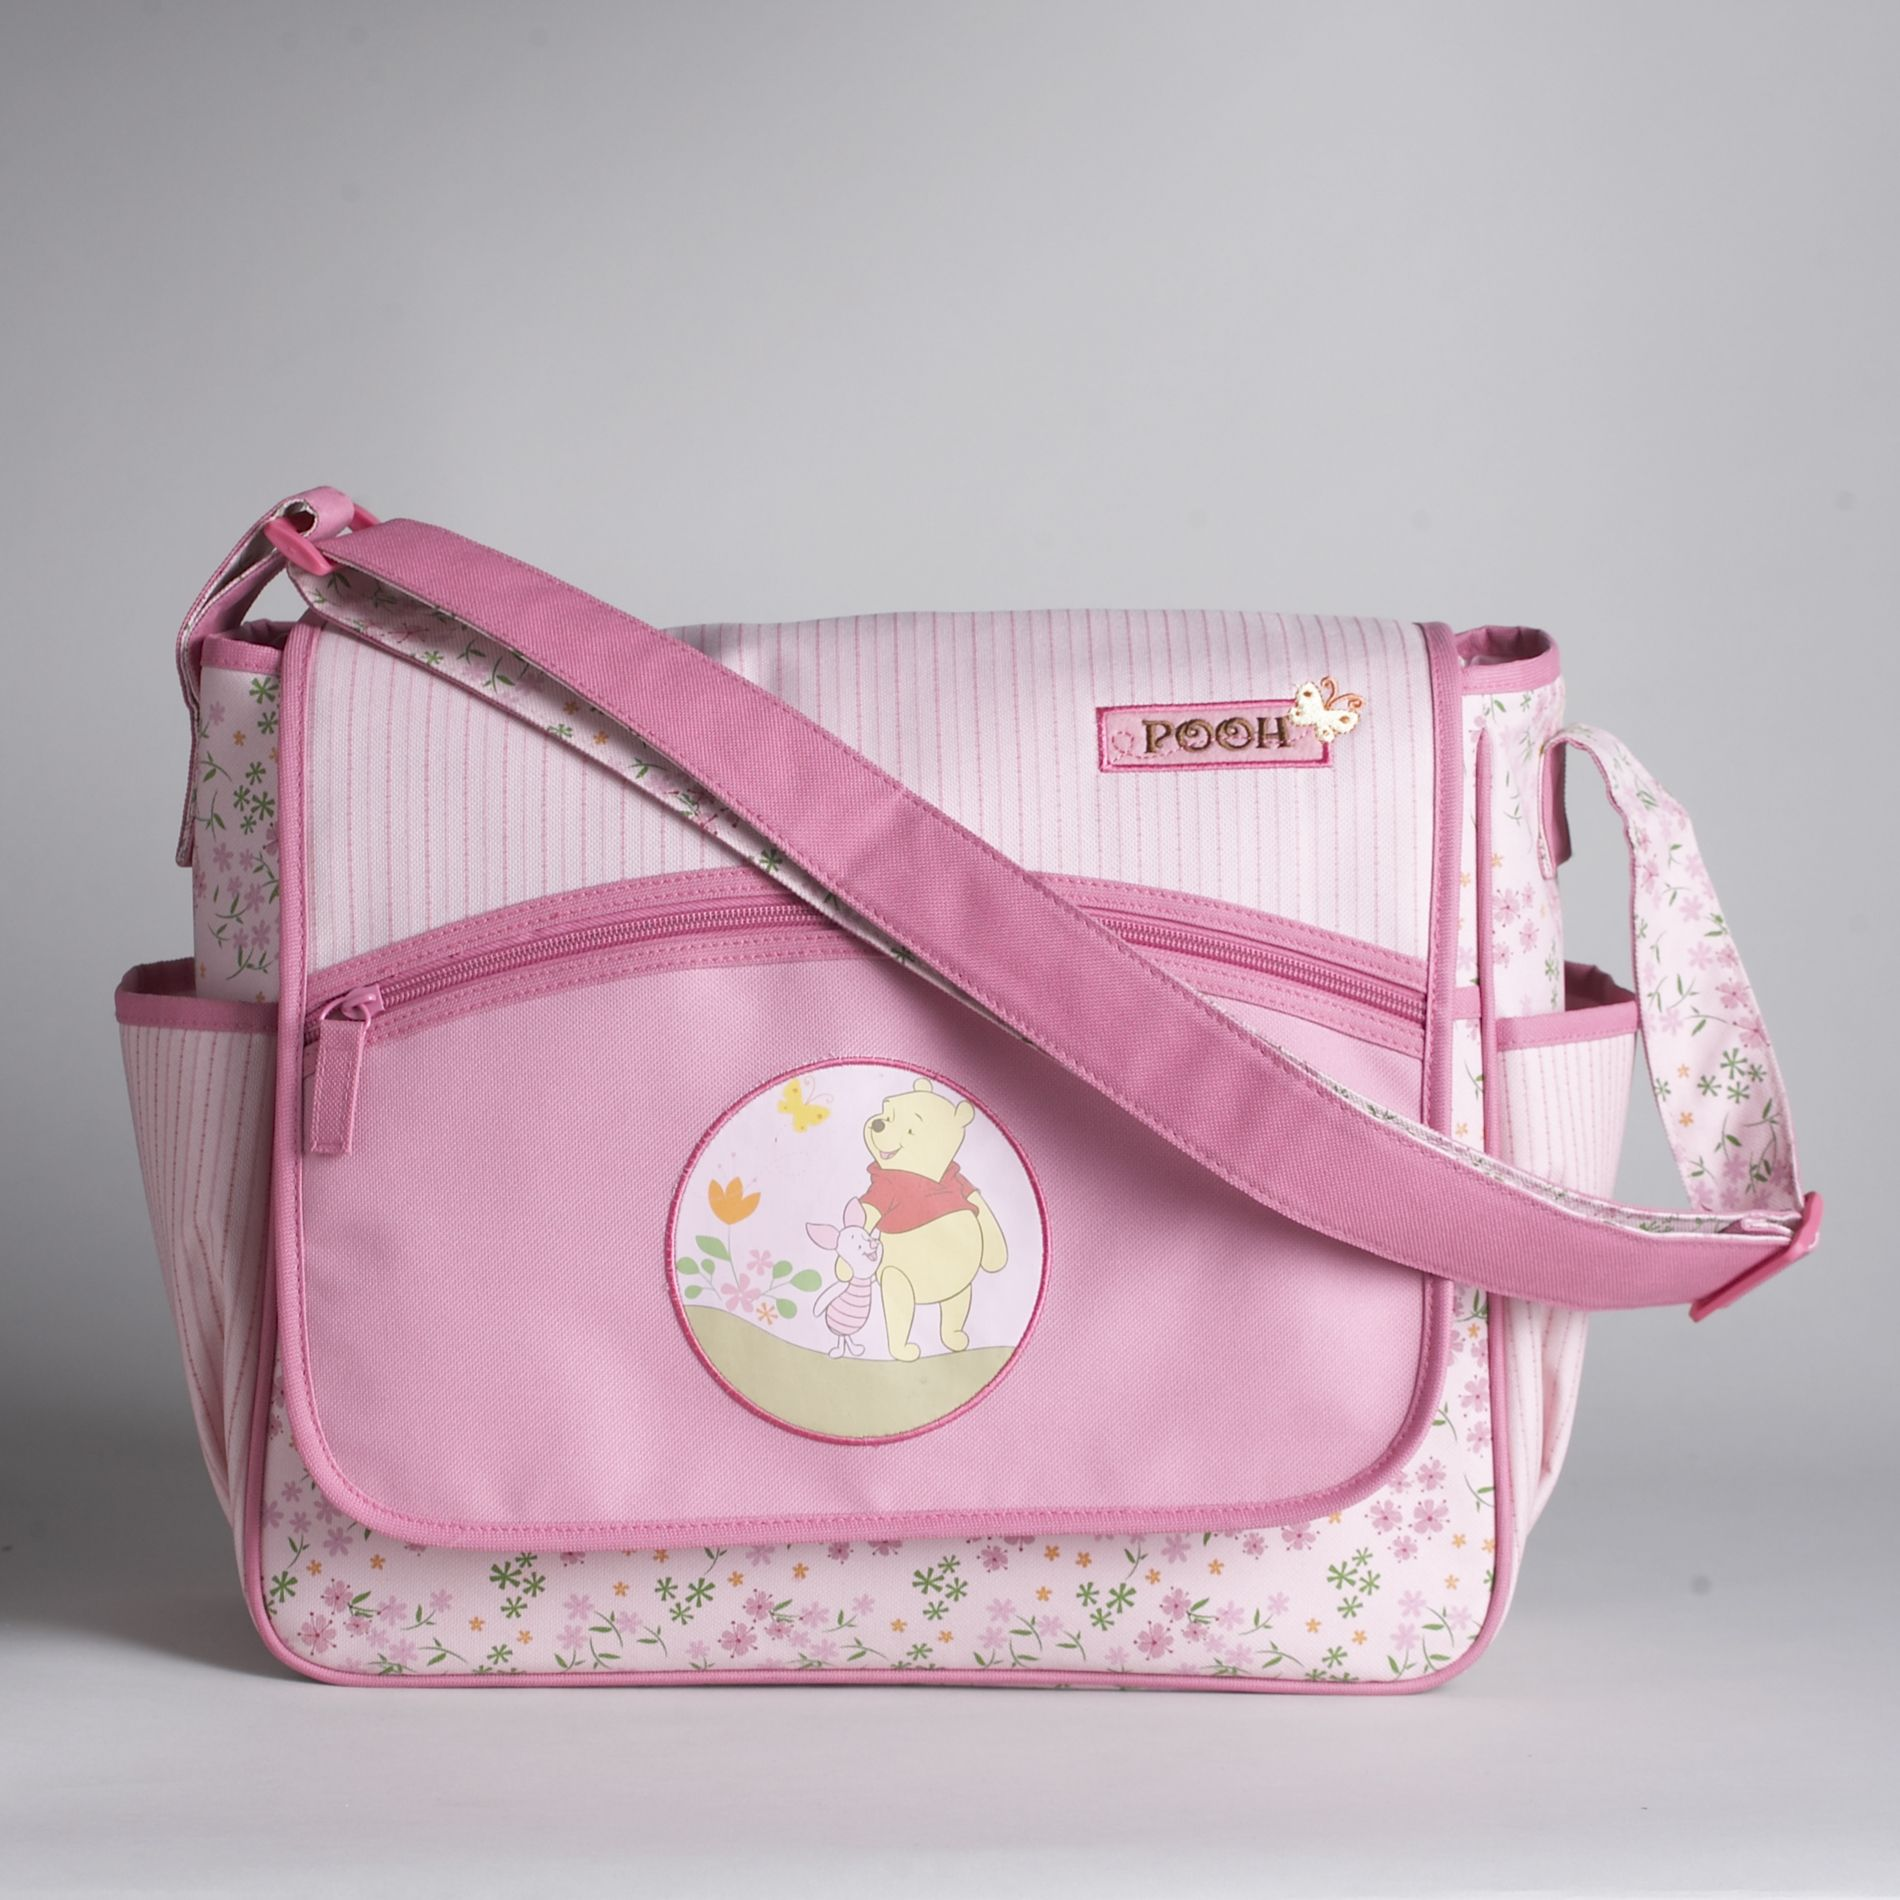 Winnie the Pooh Diaper Bag for Girls